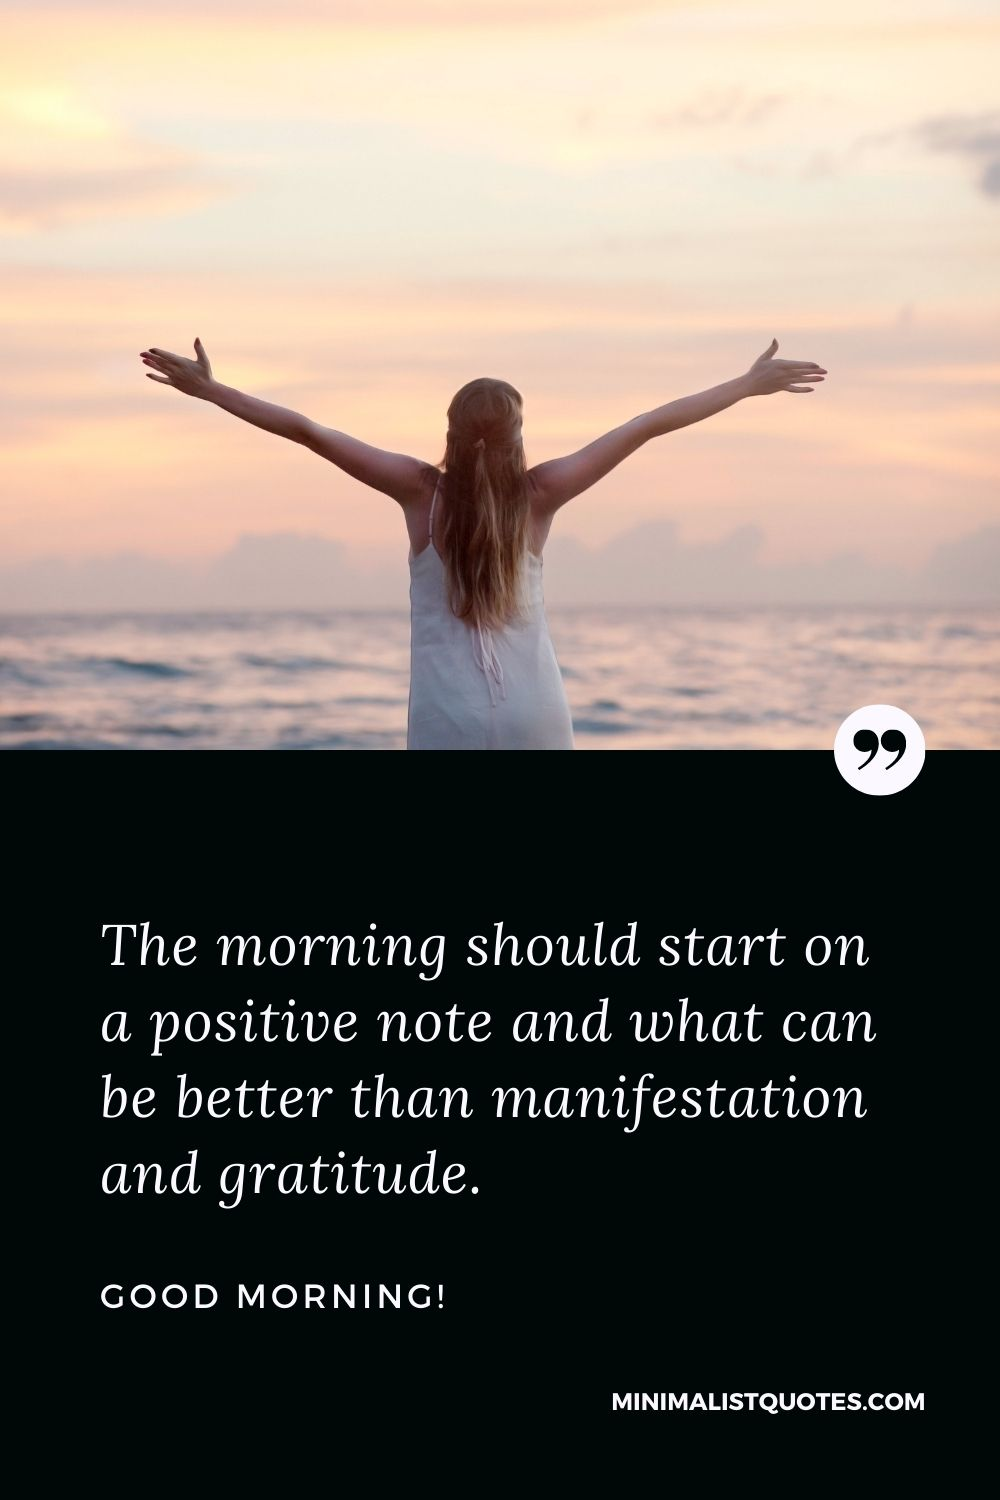 Good Morning Wish & Message with HD Image: The morning should start on a positive note and what can be better than manifestation and gratitude.